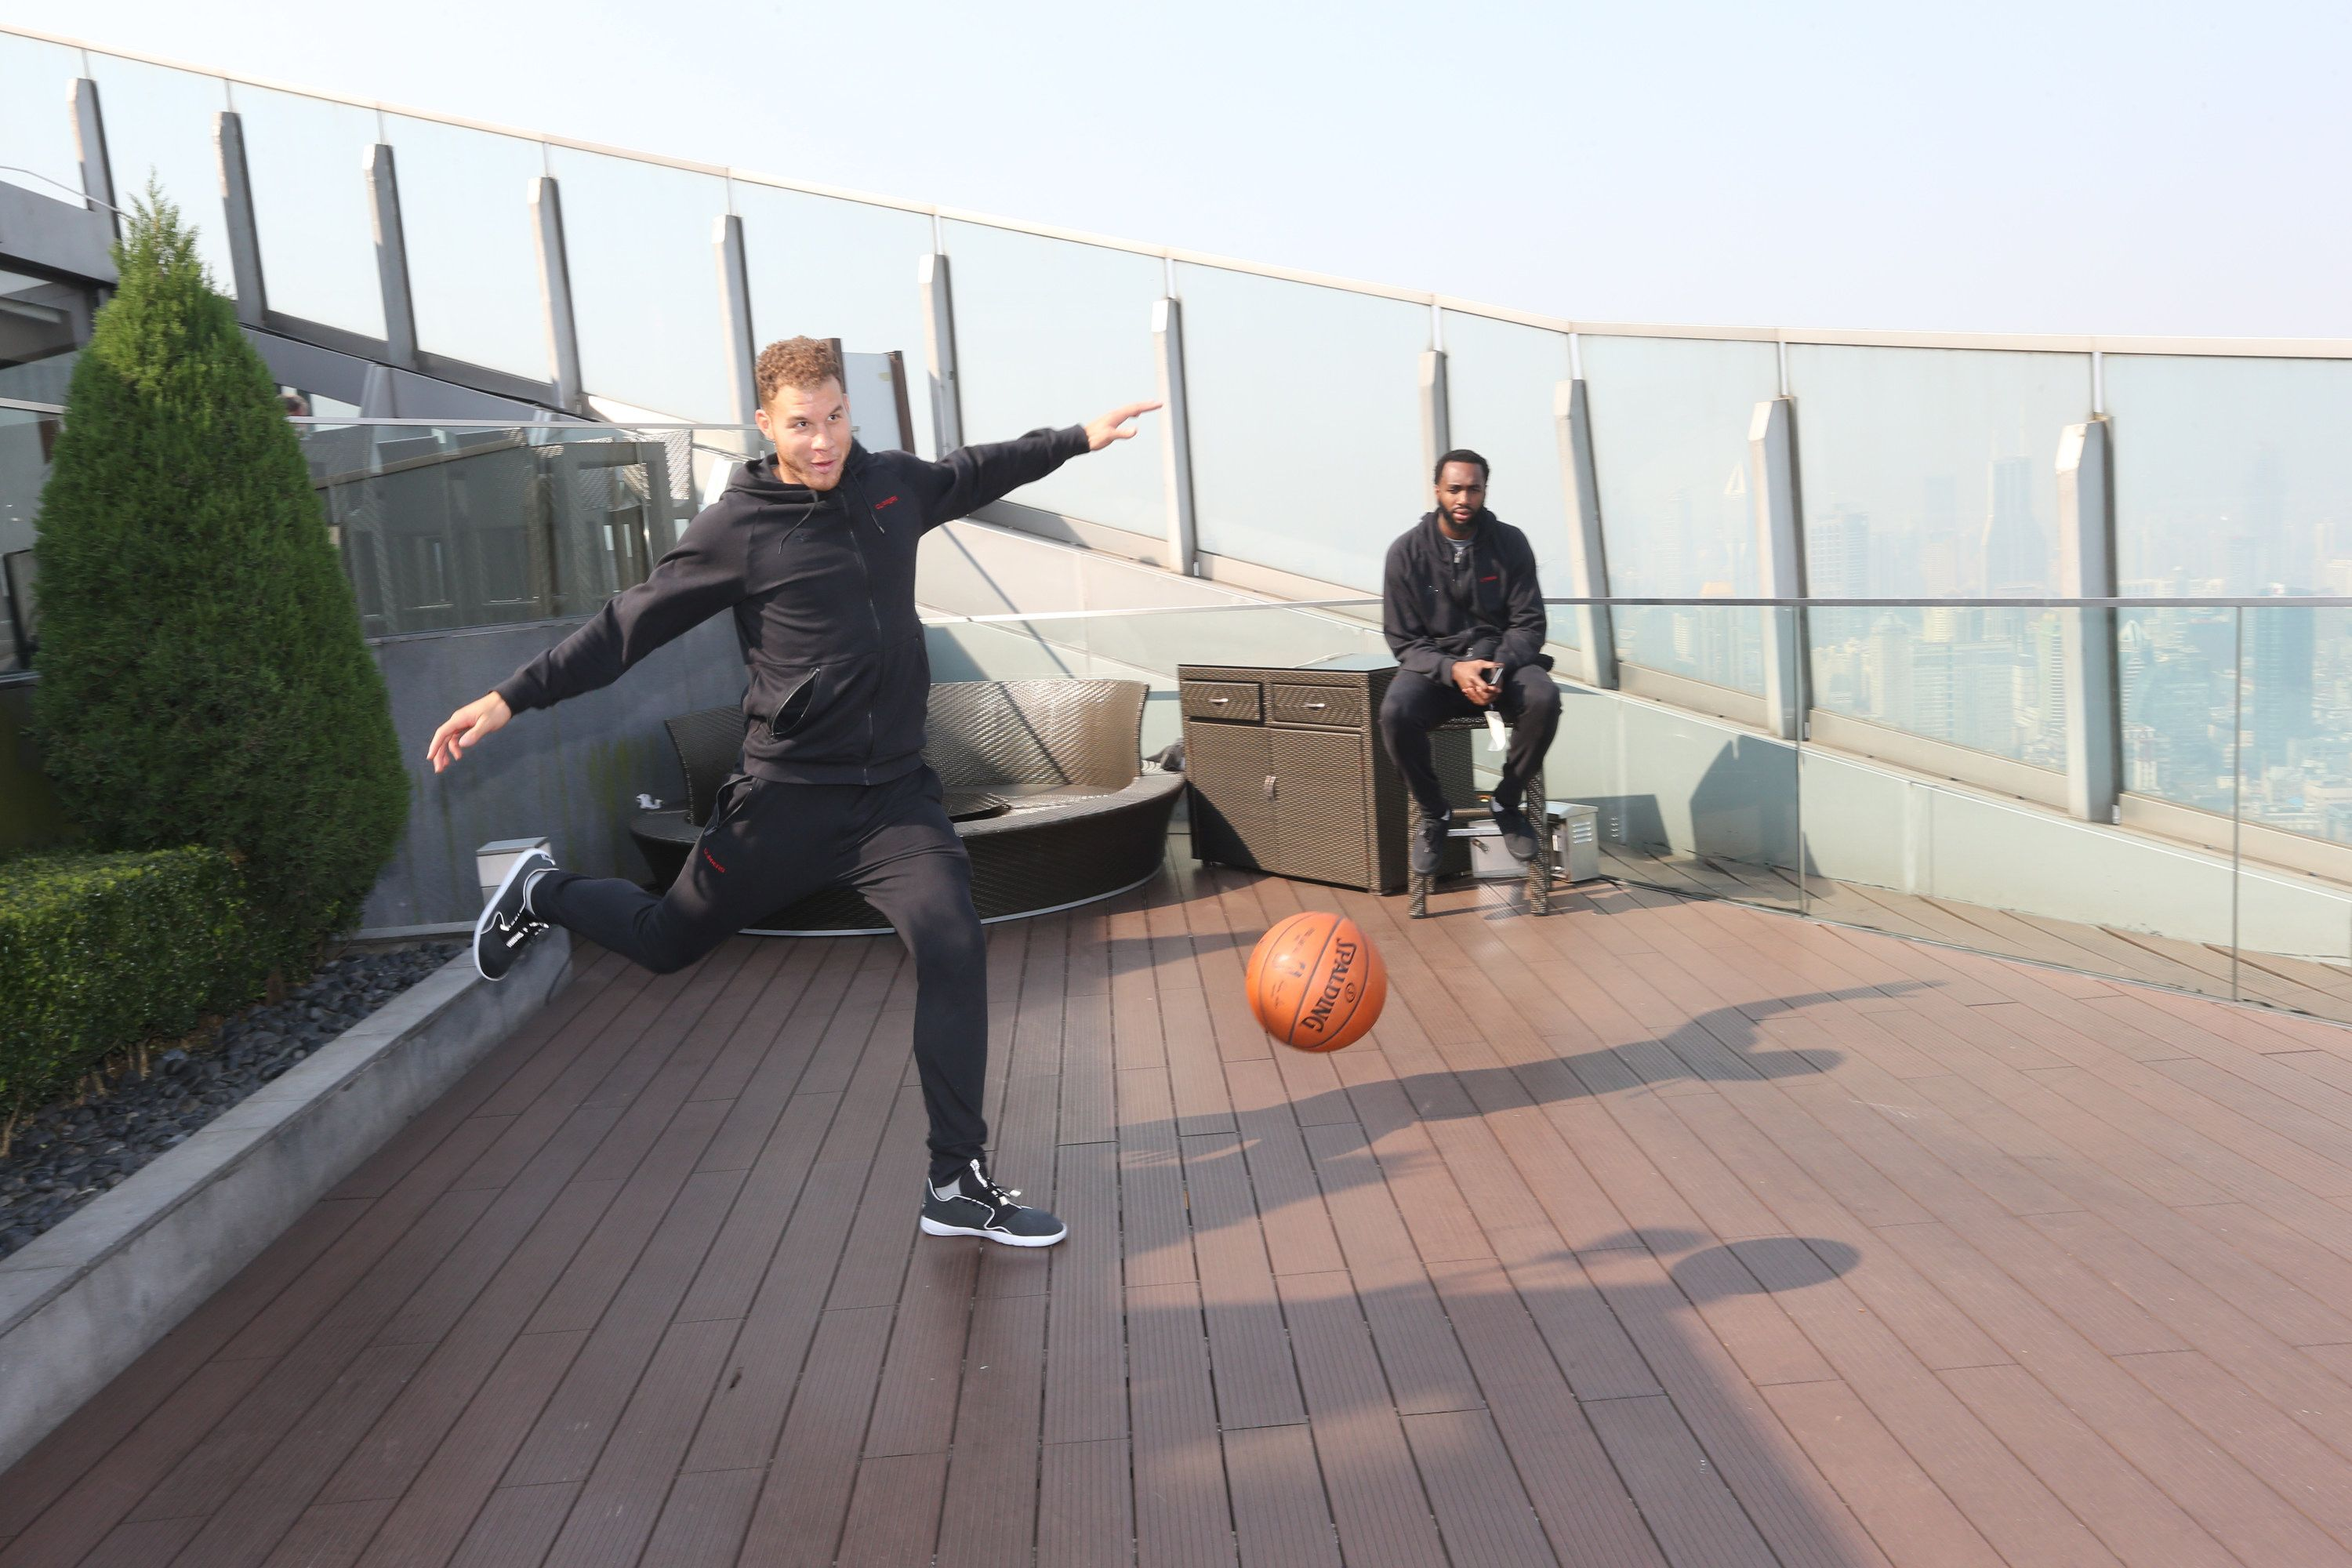 How to use a basketball, not, By Blake Griffin, Shanghai 2015